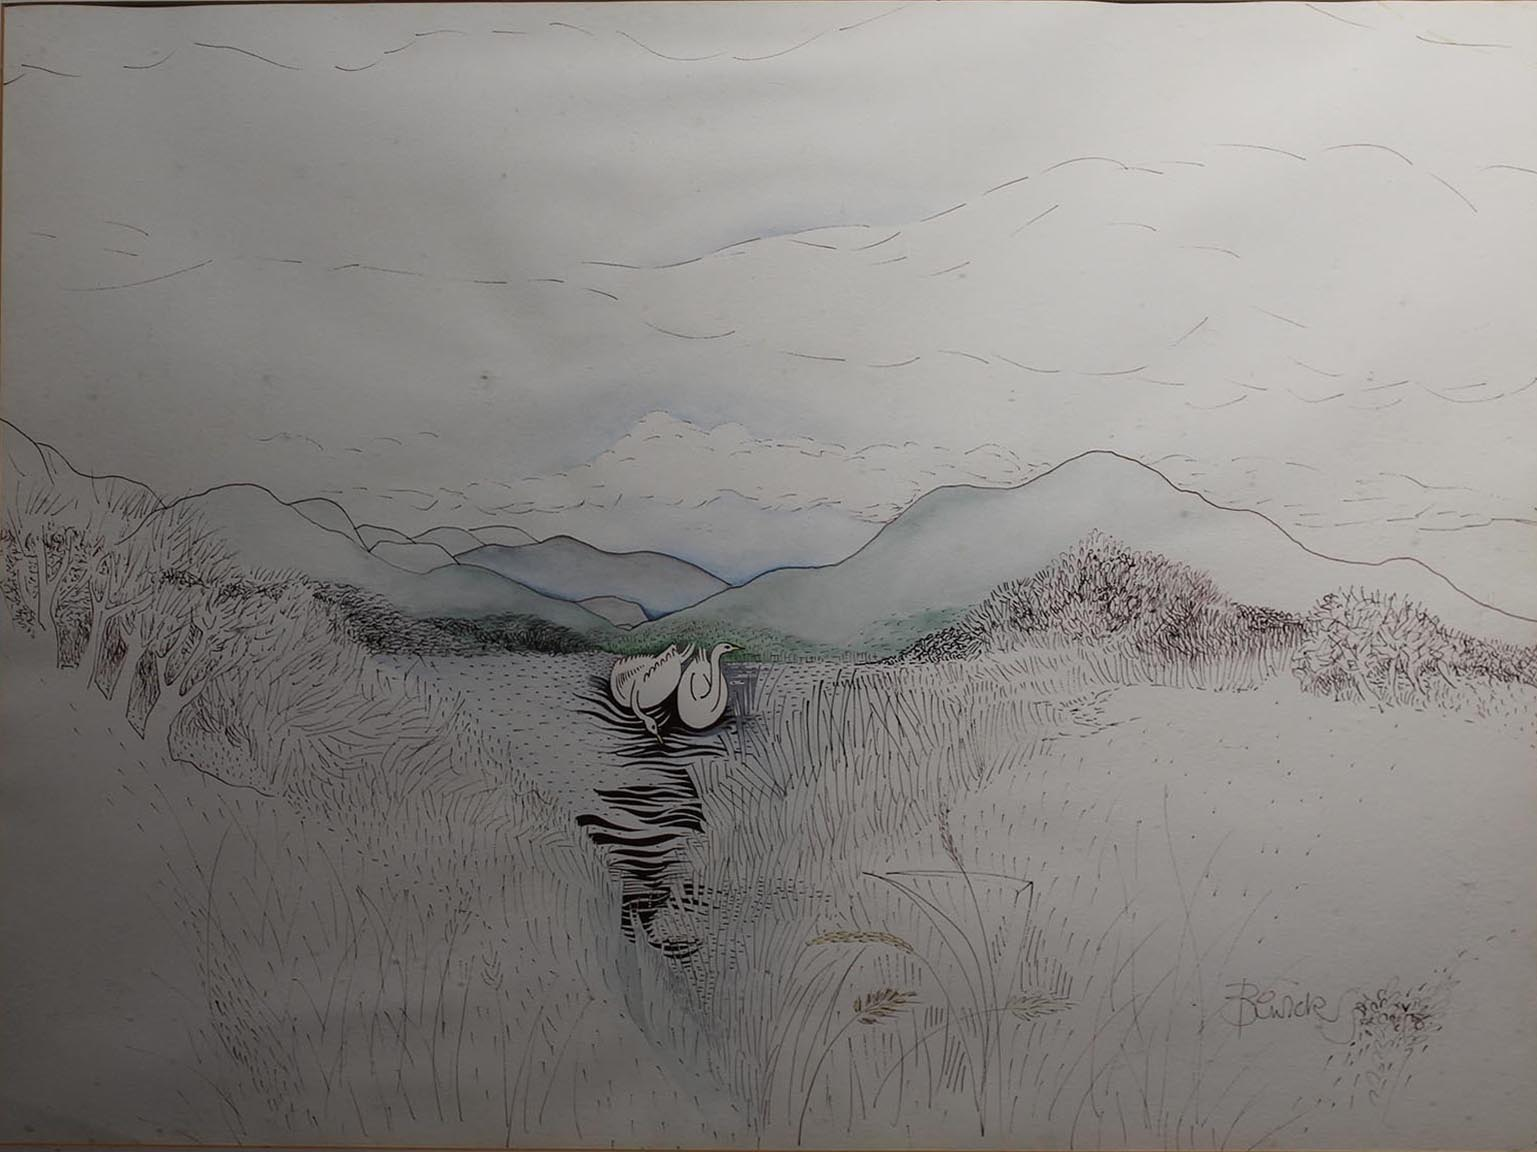 "Lot 12 - Pauline Bewick SWANS, KILLARNEY Pen & Wtercolour, 22"" x 30"" (55.9 x 76.2 cm), signed, inscribed"